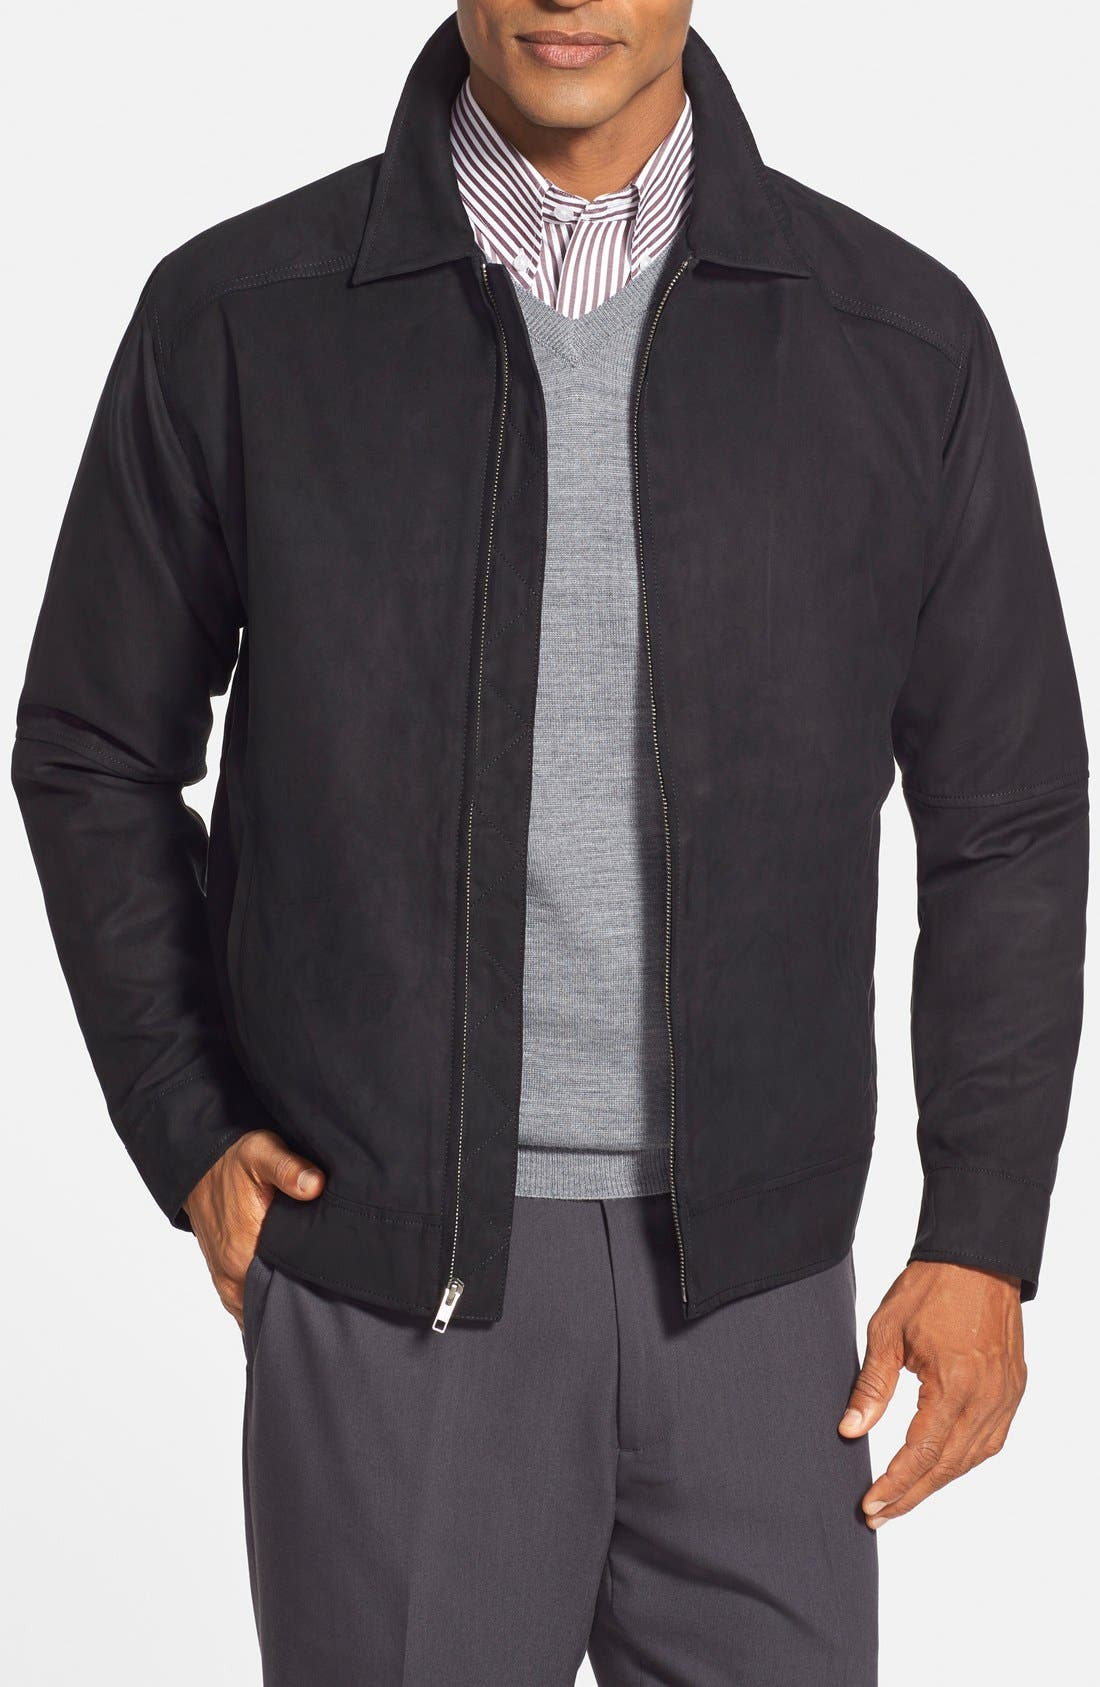 'Roosevelt' Classic Fit Water Resistant Full Zip Jacket,                         Main,                         color, 001